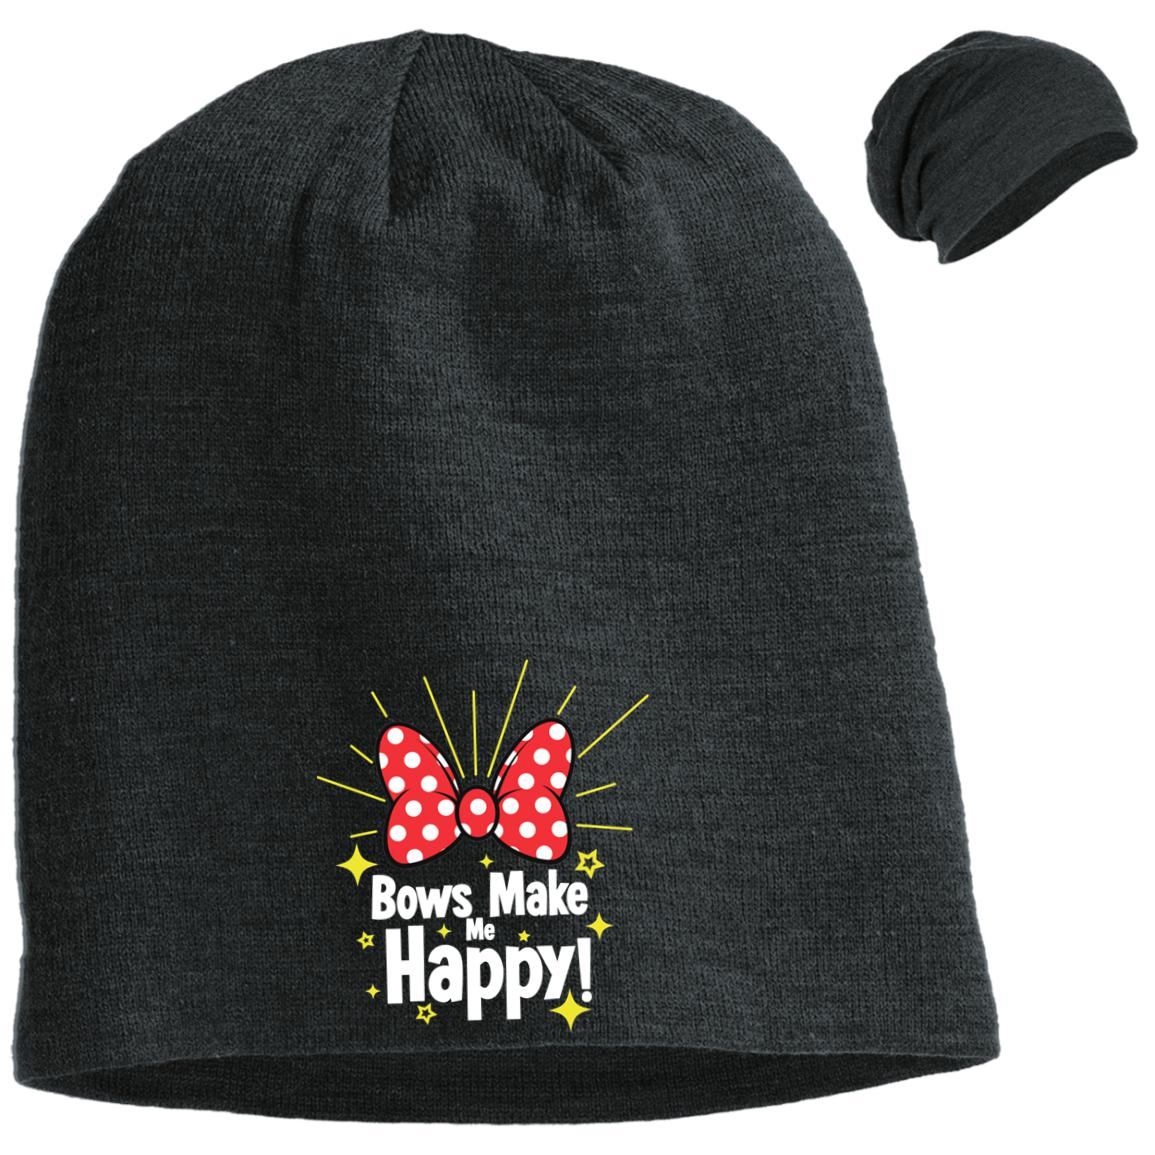 Bows Make Me Happy - Embroidered District Slouch Beanie